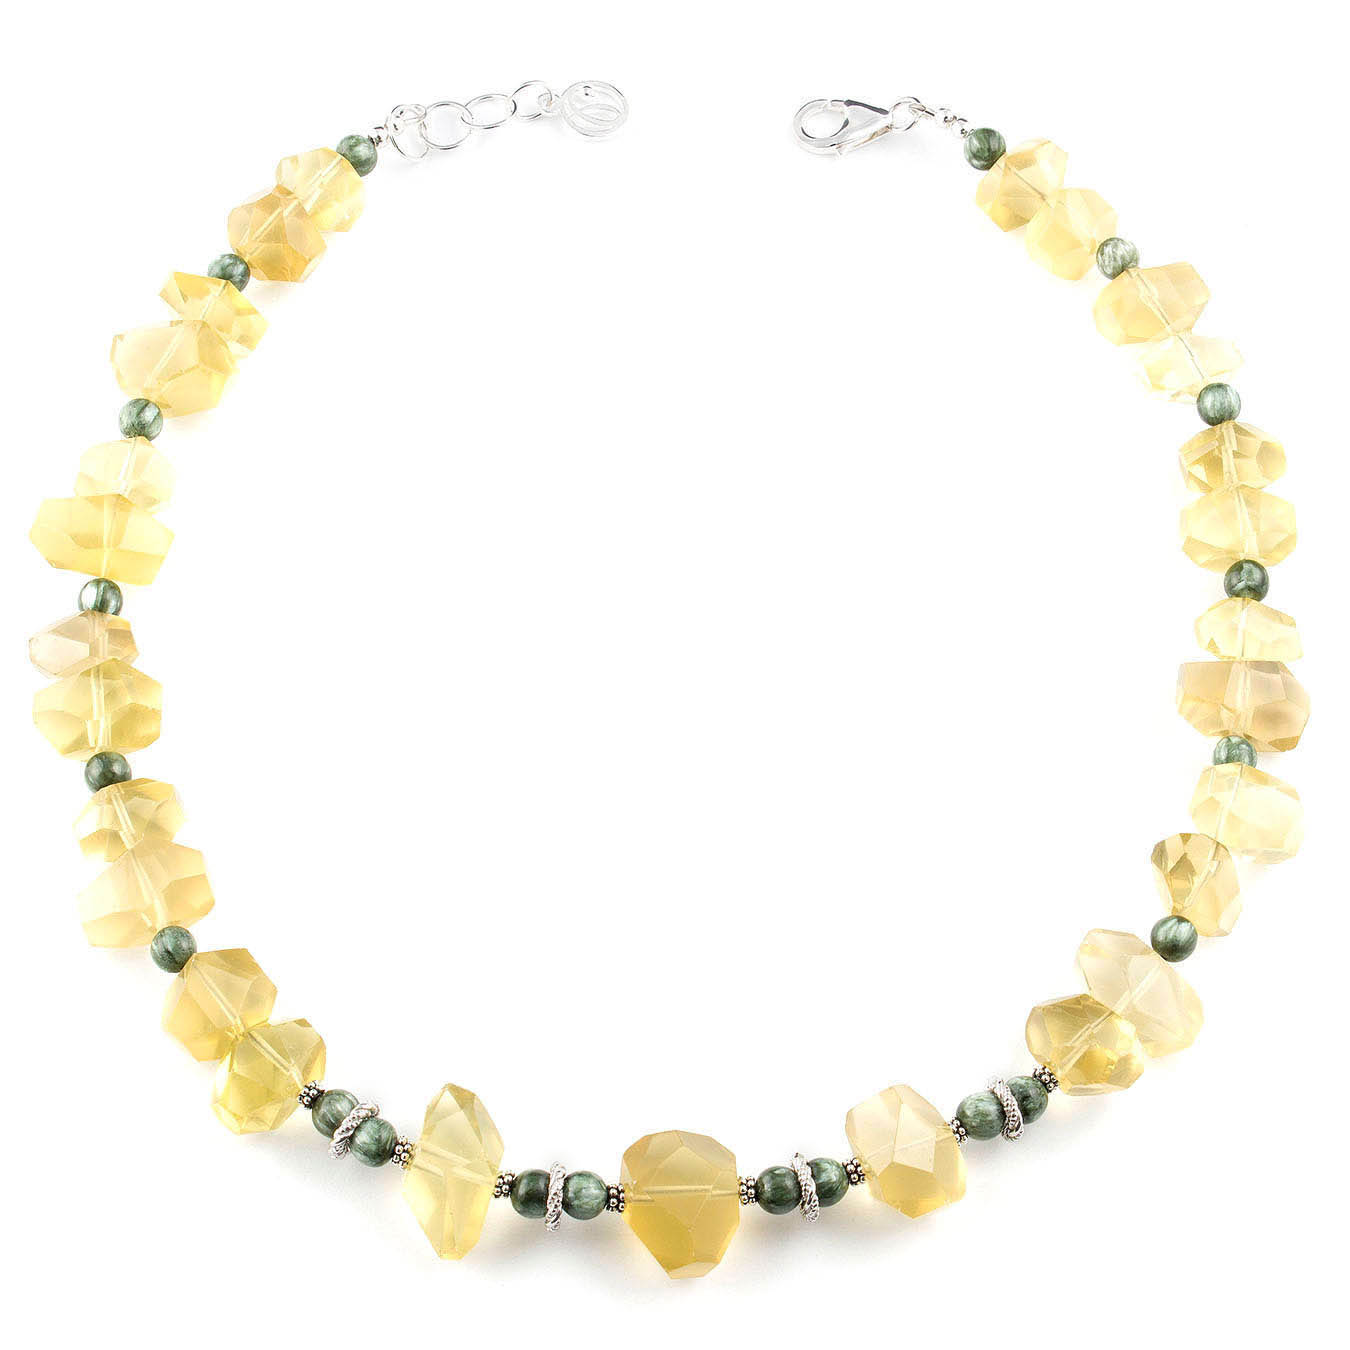 Statement necklace set artisan made with lemon quartz and seraphinite